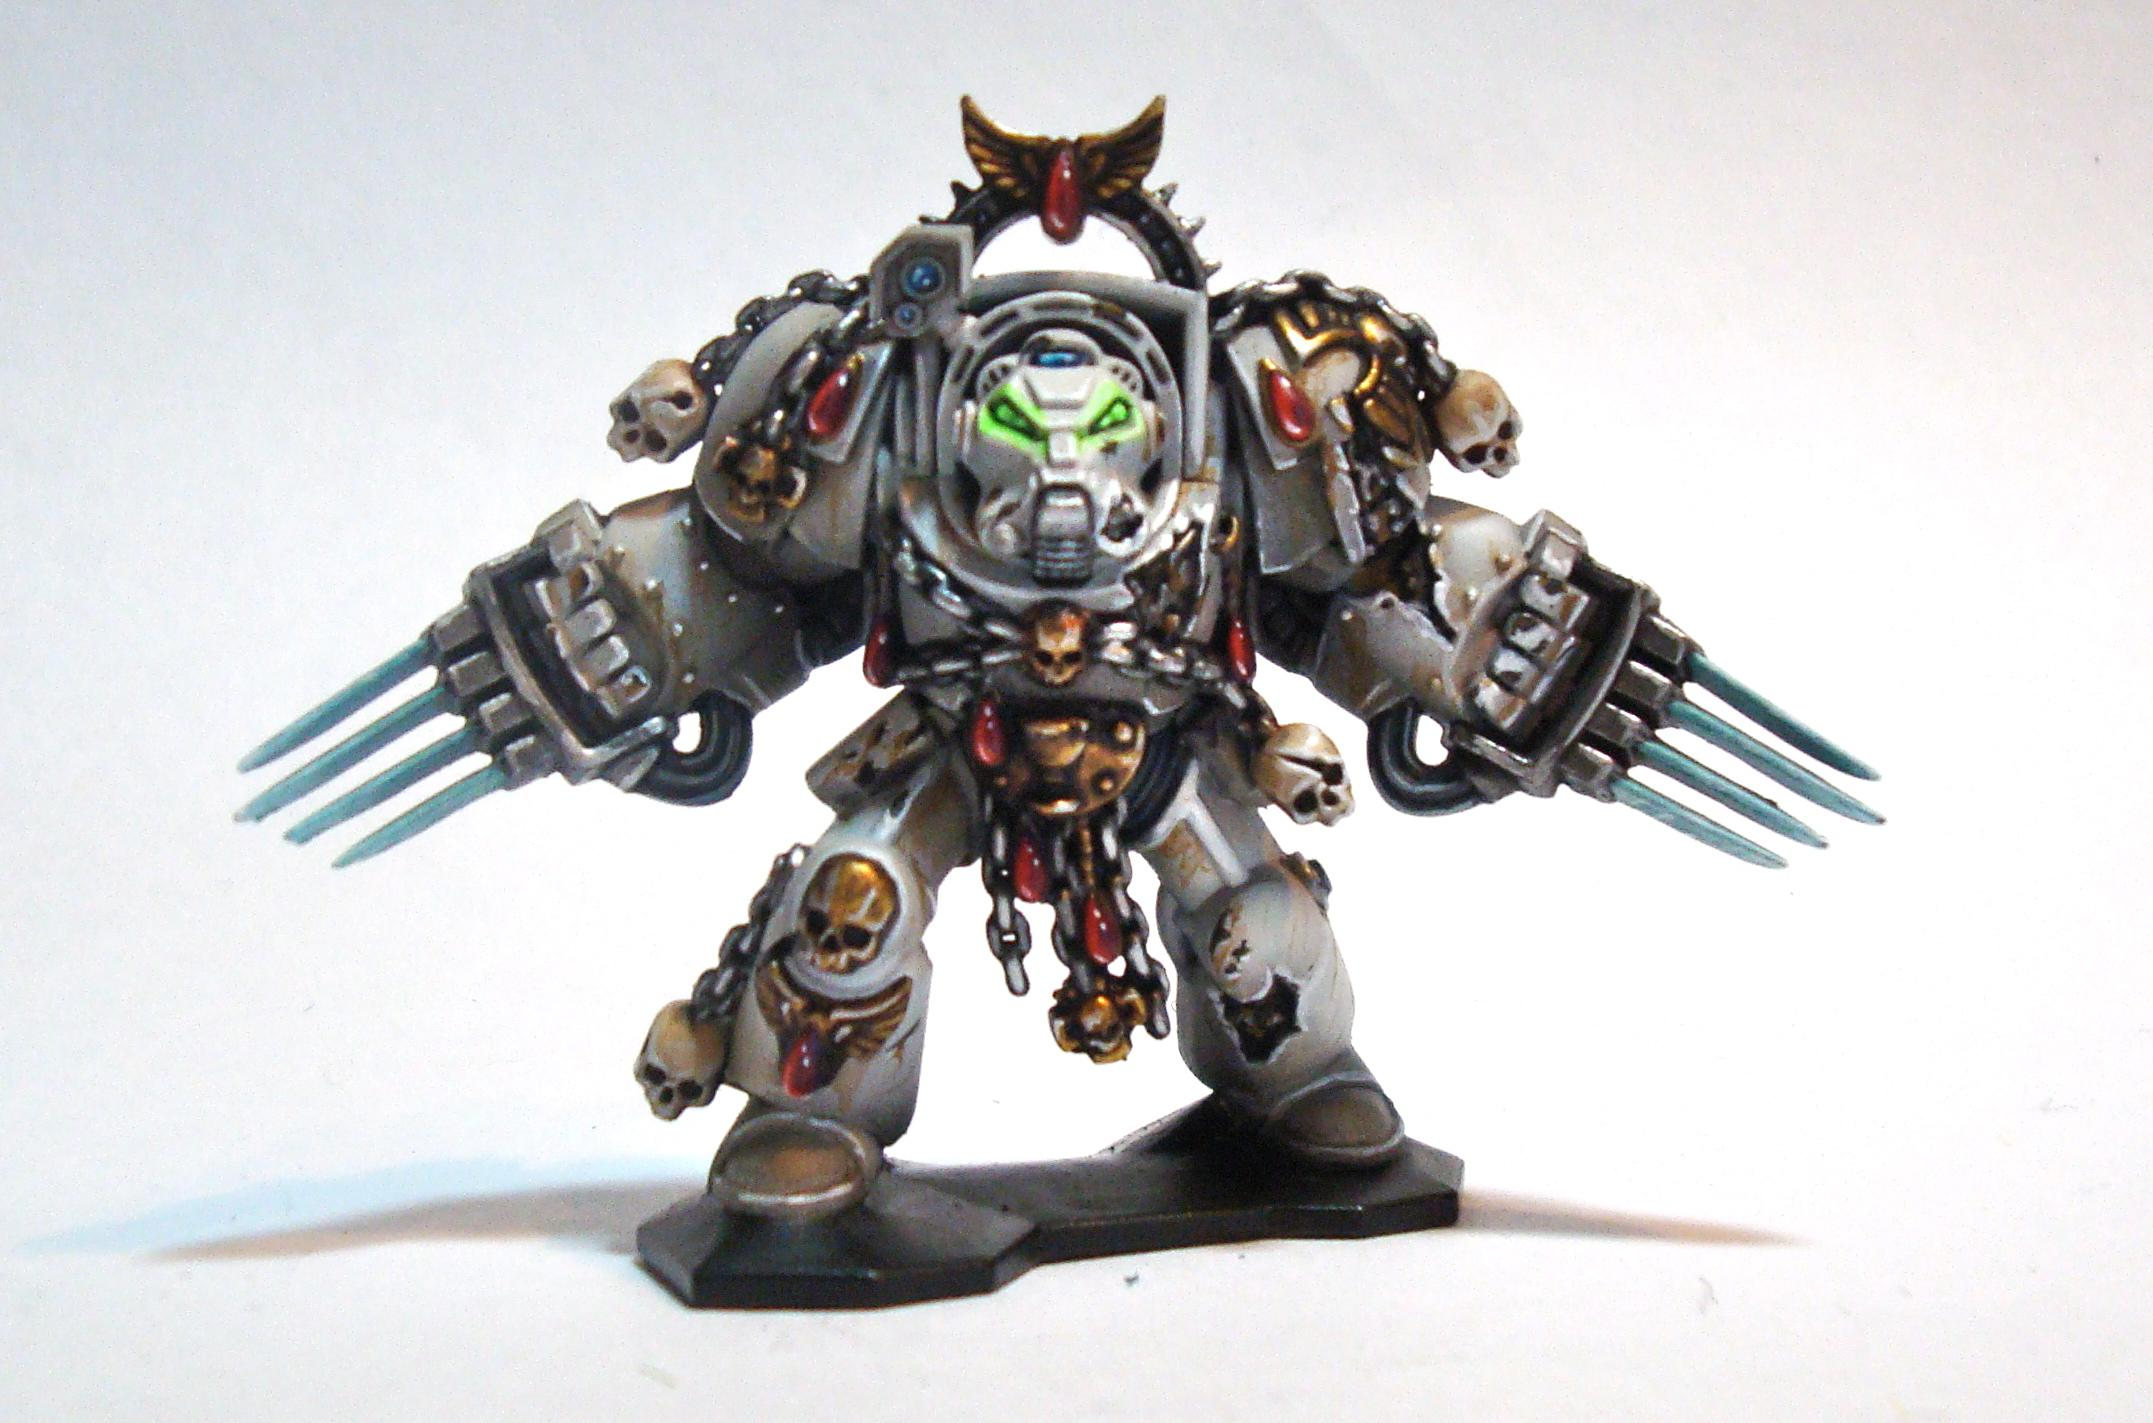 Angel Exemplar, Assault Terminator, Lightning Claws, Space Marines, Terminator Armor, Warhammer 40,000, Weathered